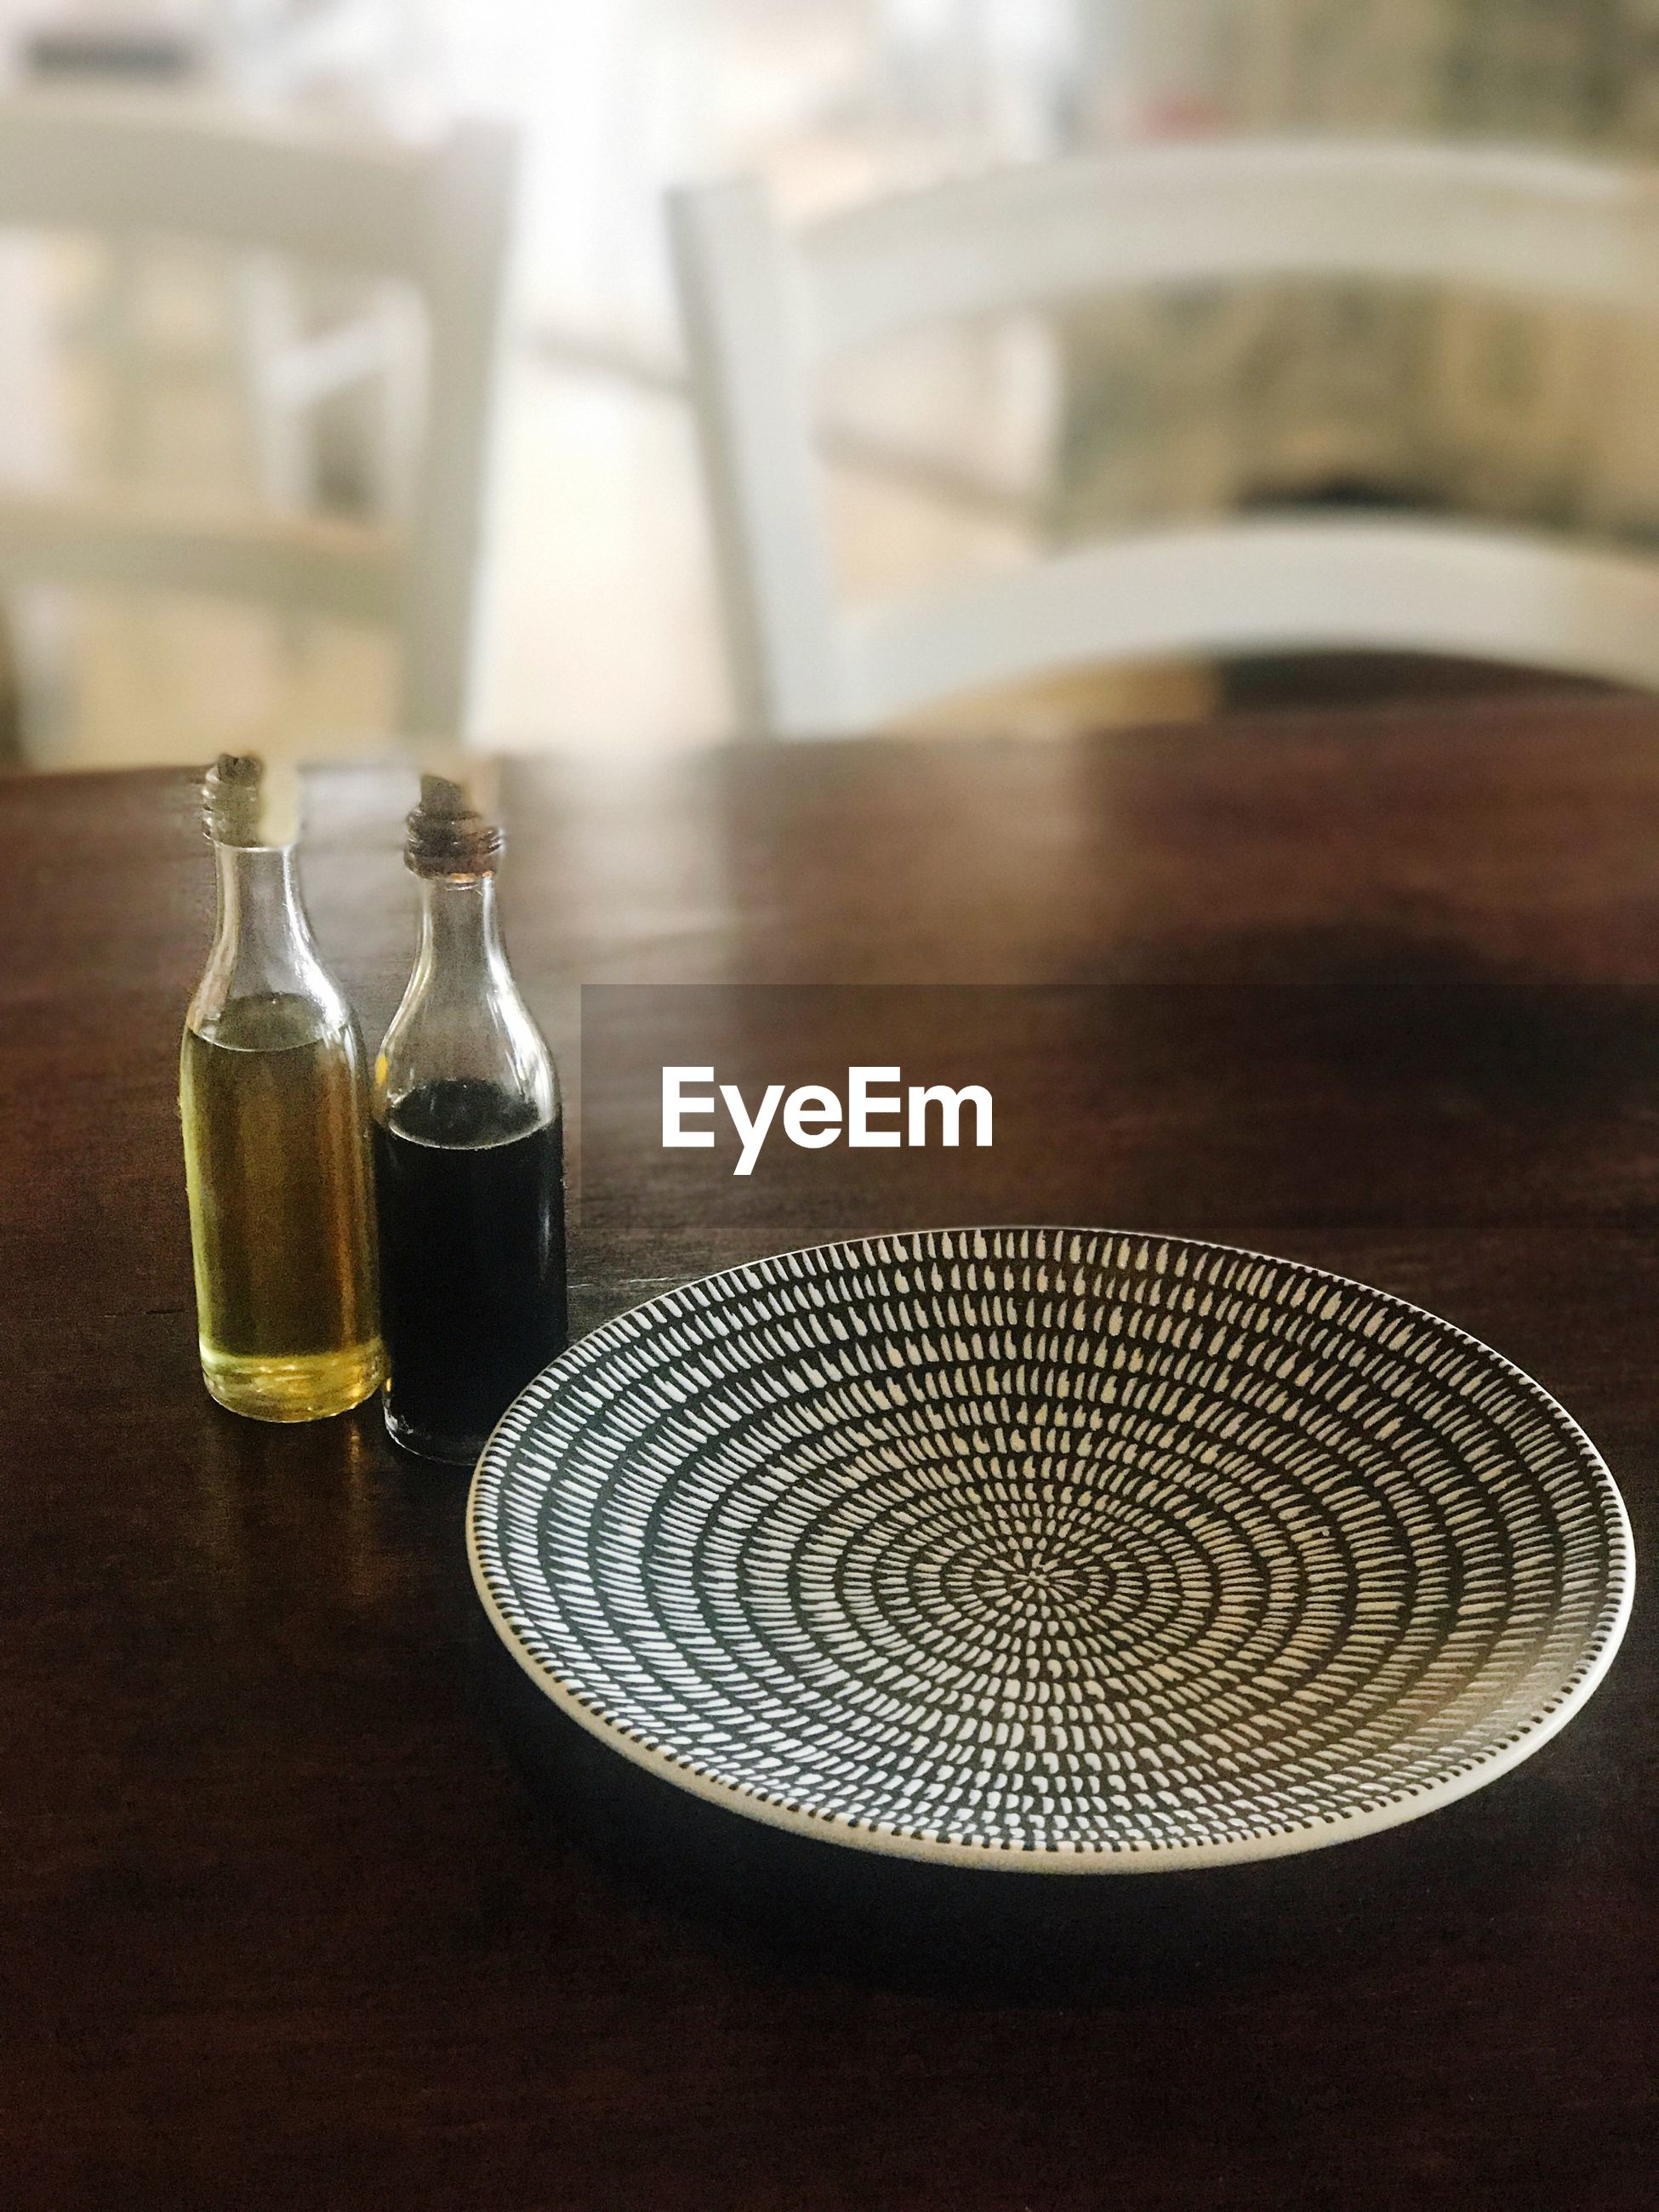 Bottles with plate on wooden table